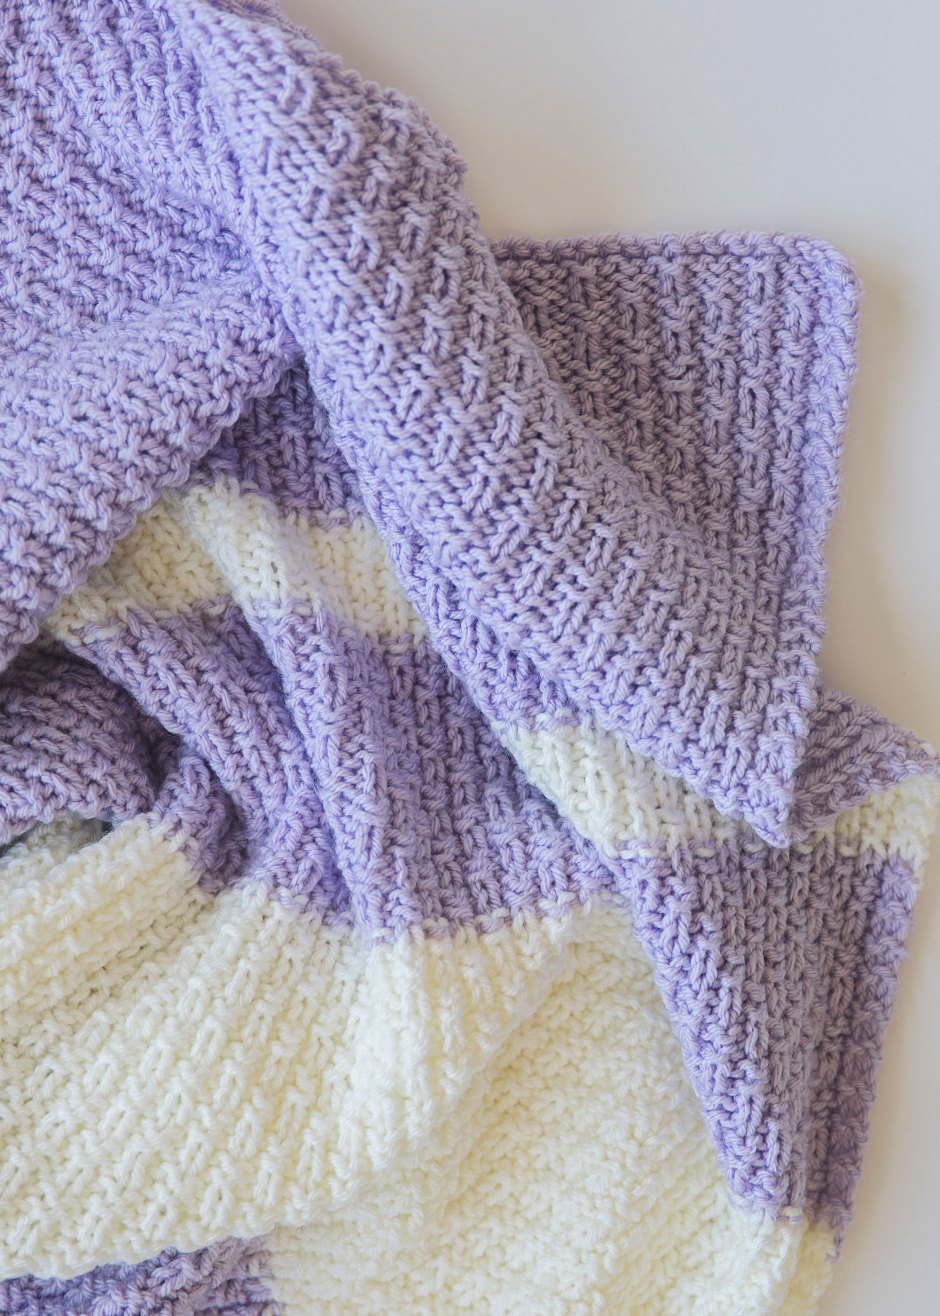 Knitting Pattern For Newborn Blanket : Easy Knit Baby Blanket Pattern - Leelee KnitsLeelee Knits